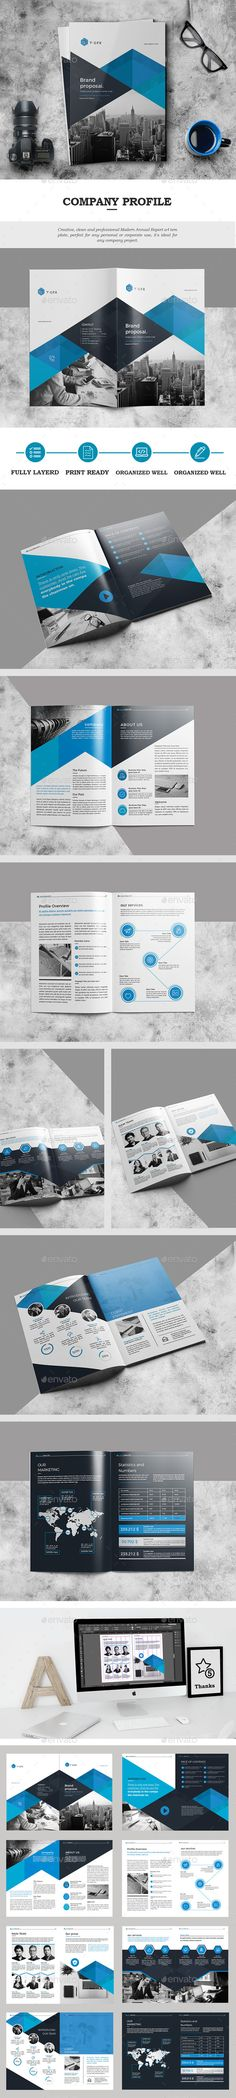 #The Brochure - #Catalogs #Brochures Download here: https://graphicriver.net/item/the-brochure/18840324?ref=alena994